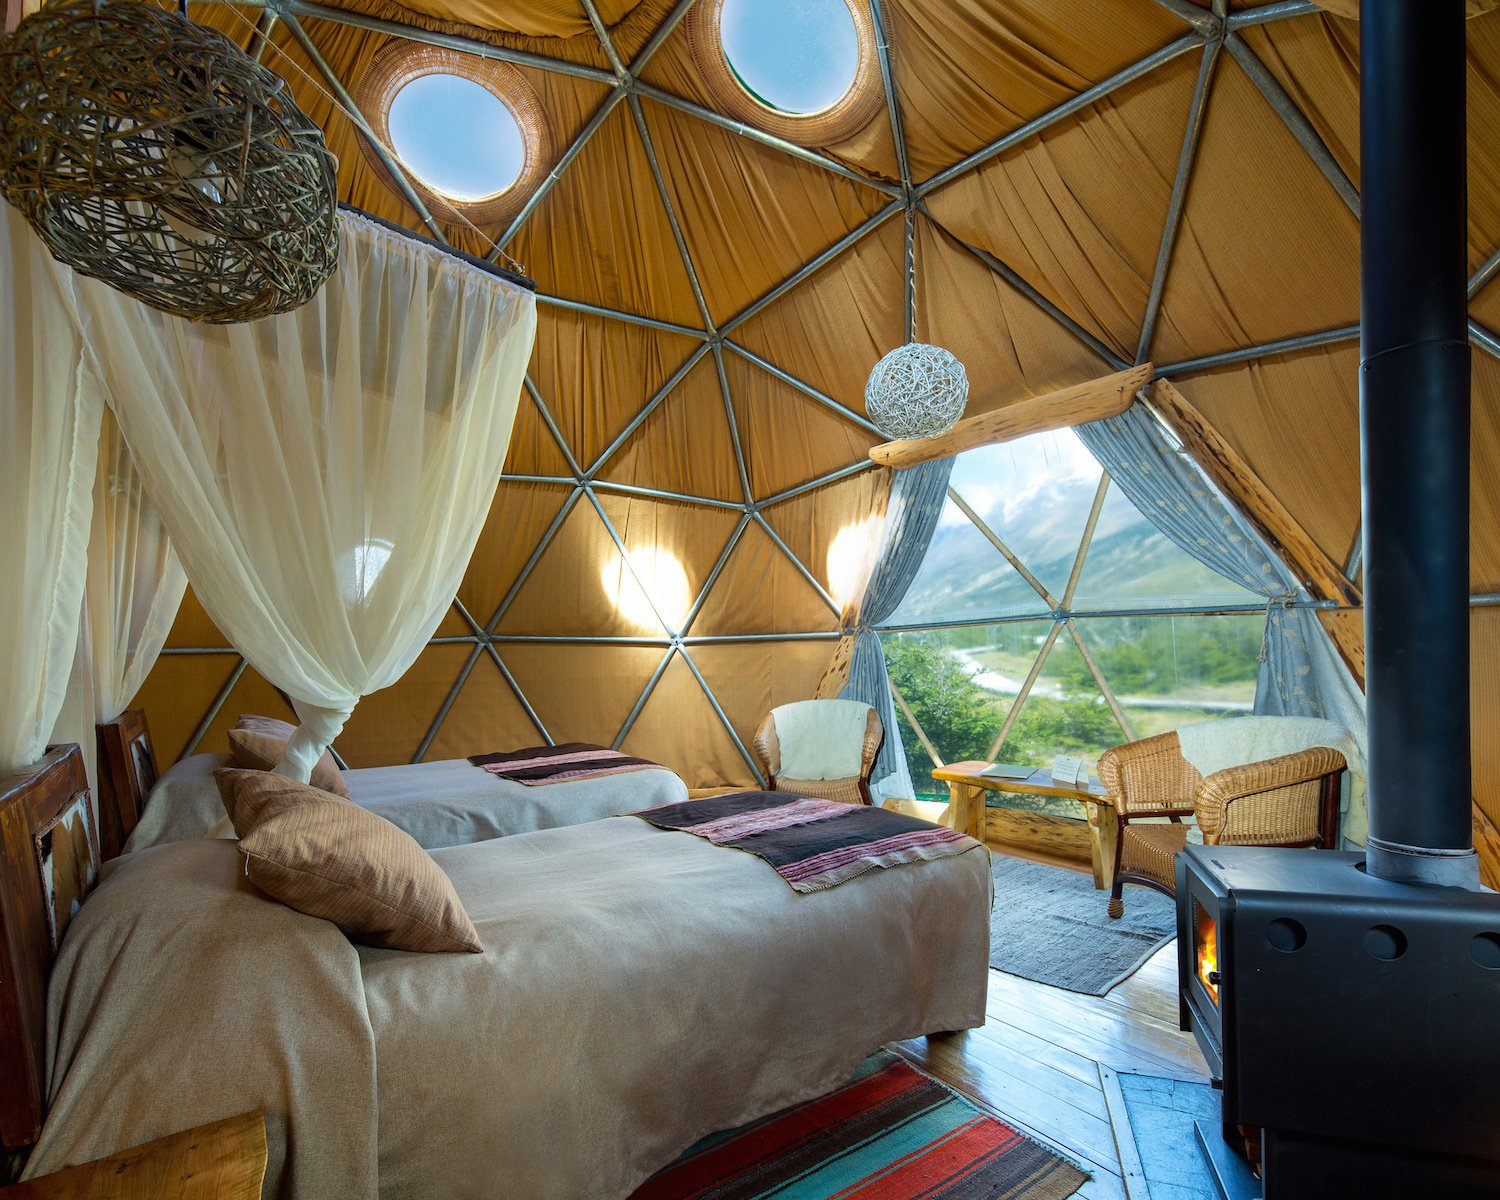 Bedroom, Chair, Pendant Lighting, Bed, Rug Floor, Medium Hardwood Floor, and Night Stands  Photo 4 of 13 in Soak Up the Magic of Patagonia at This Eco-Friendly Geodesic Dome Retreat